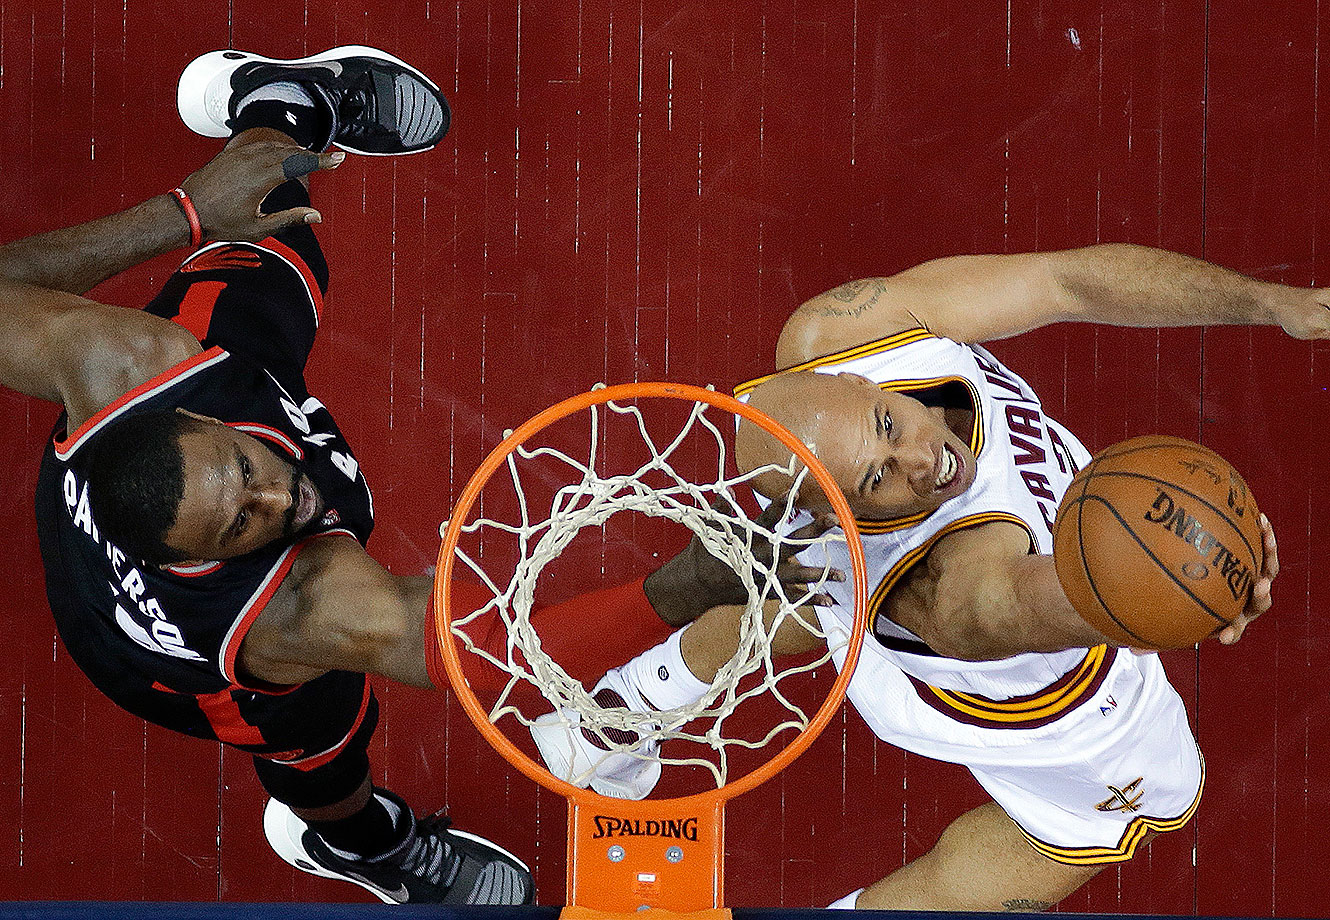 Cleveland Cavaliers' Richard Jefferson (24) shoots against Toronto Raptors' Patrick Patterson (54) during the first half of Game 5 of the NBA basketball Eastern Conference finals Wednesday.